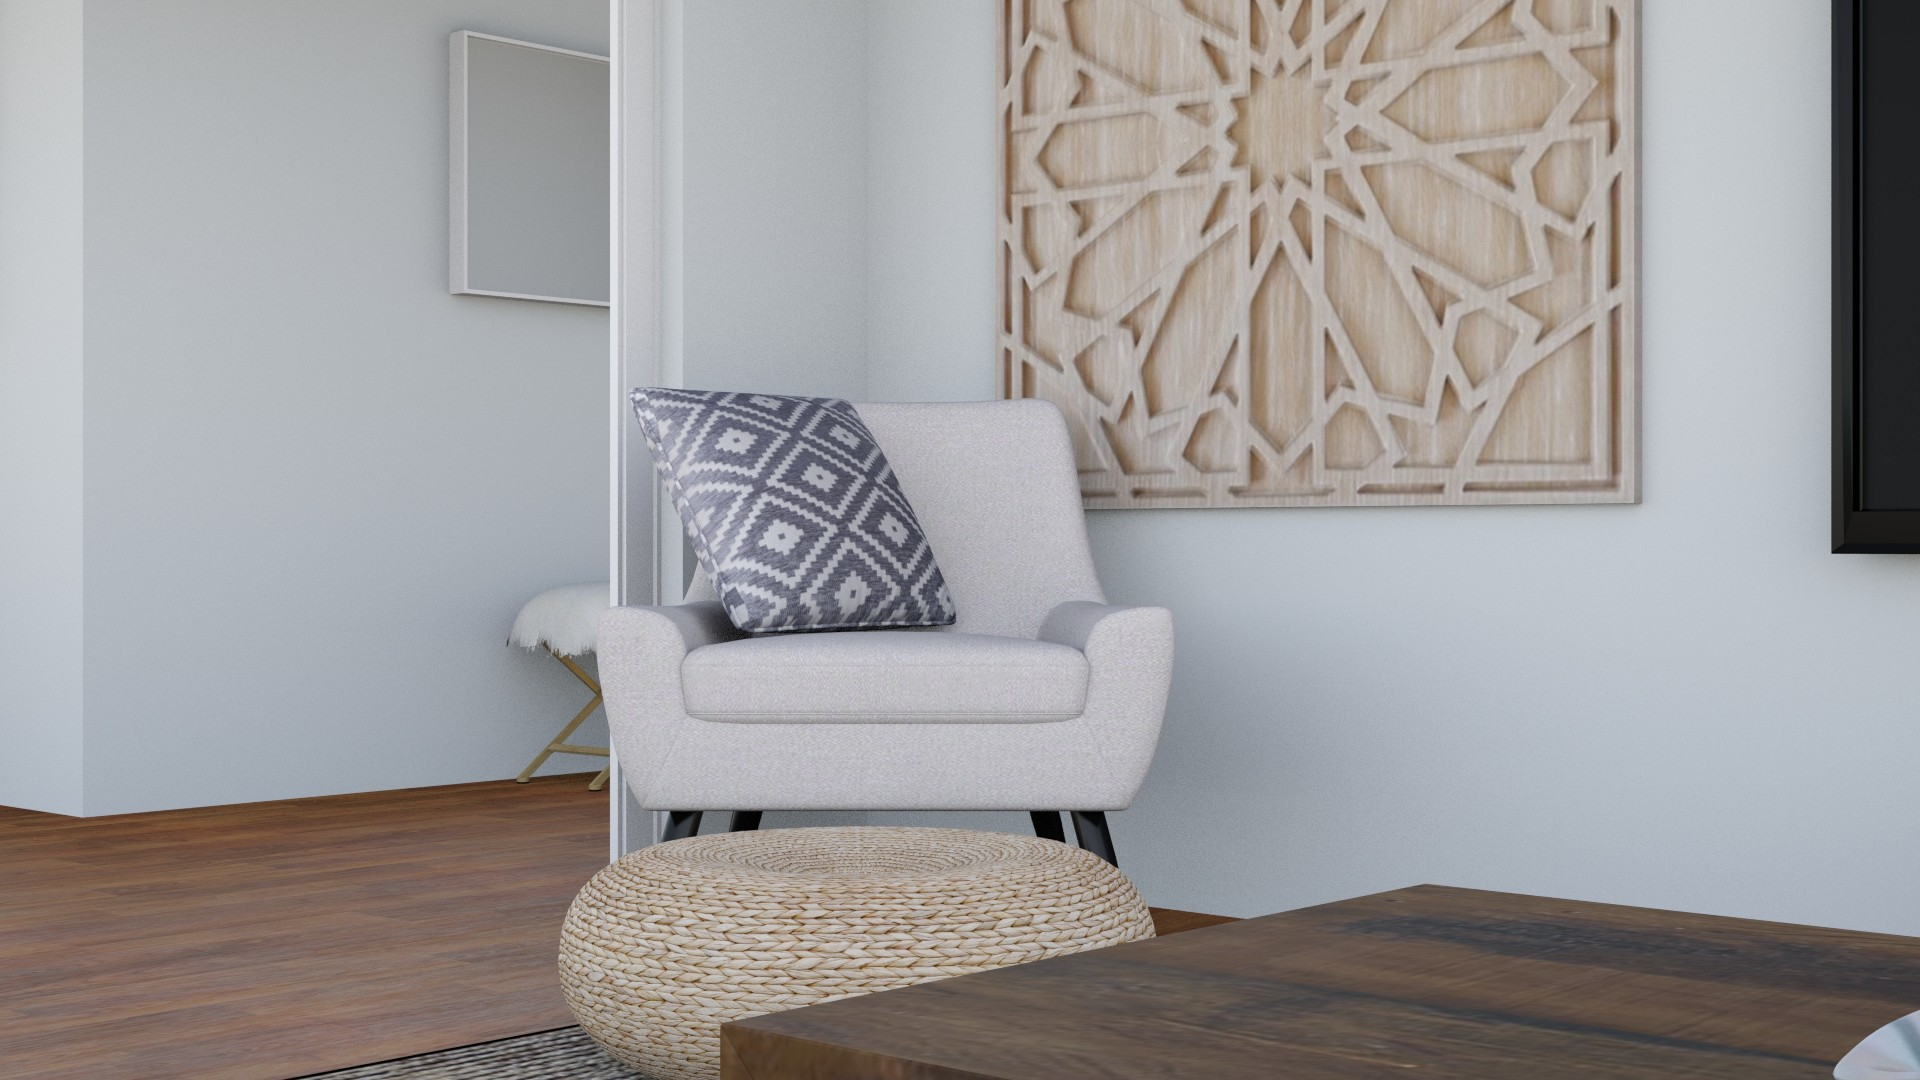 Sassy Charm Living Room Design by Albie Knows